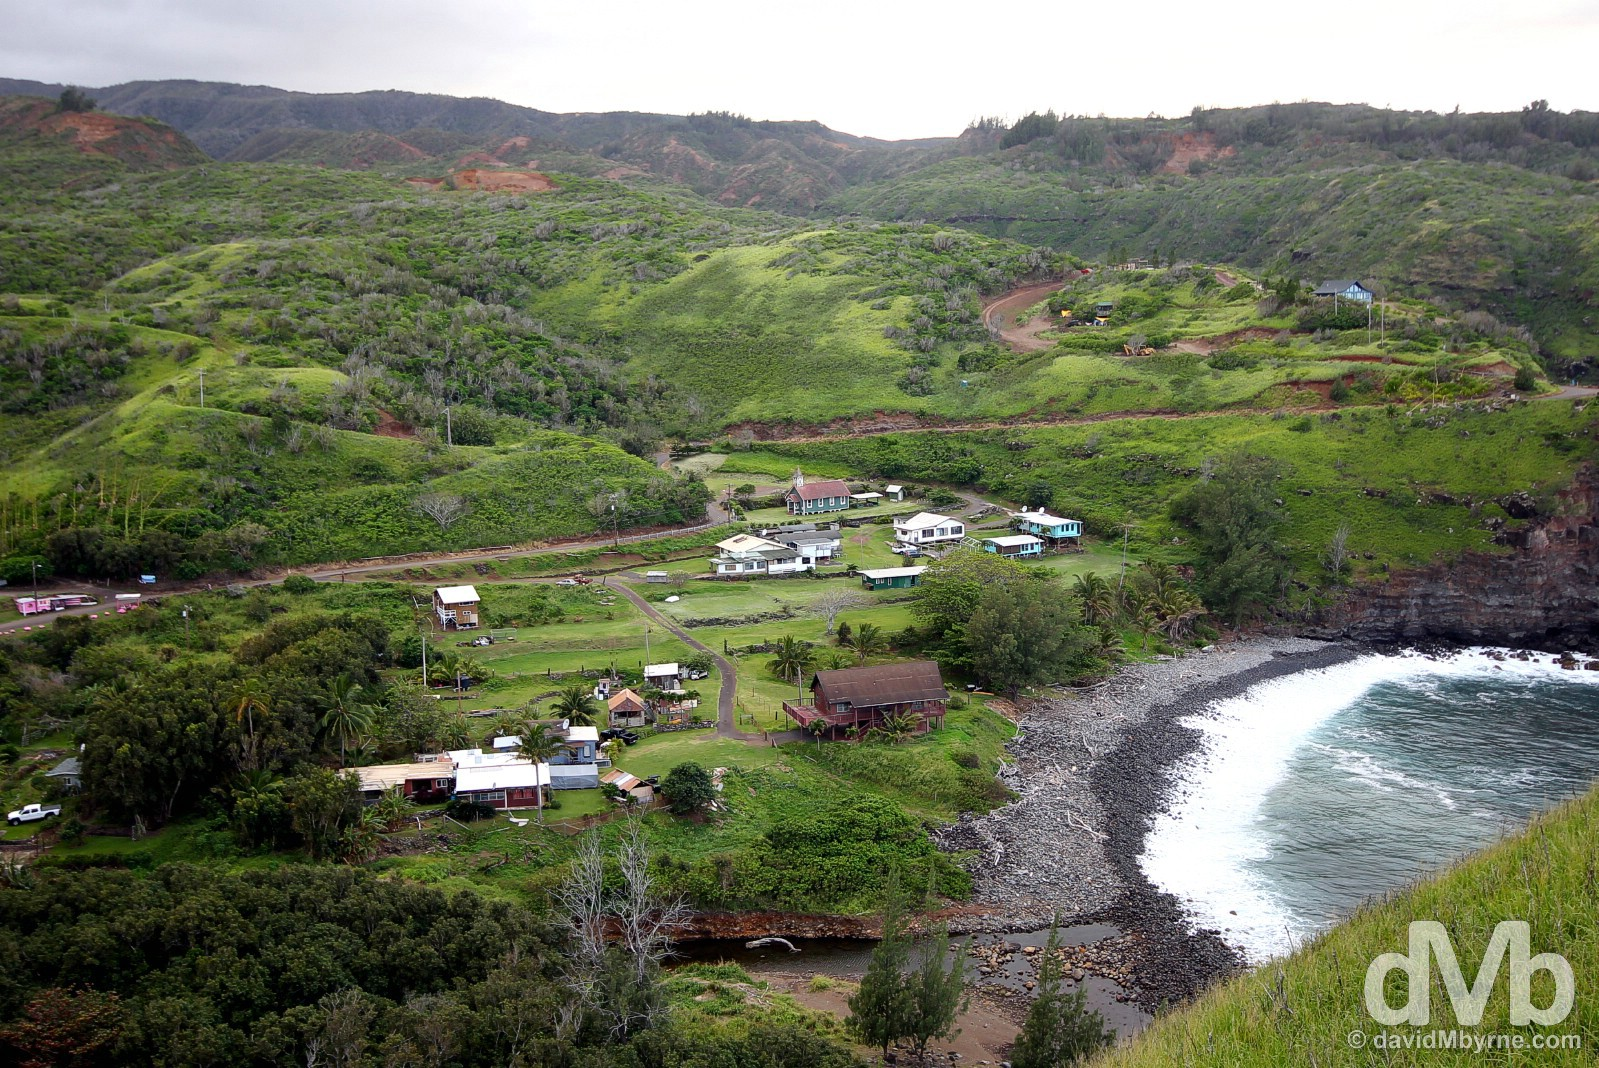 A small settlement off State Highway (yes, 'highway') 340, a.k.a. the Kahekili Highway, in remote western Maui, Hawaii, USA. March 4, 2013.